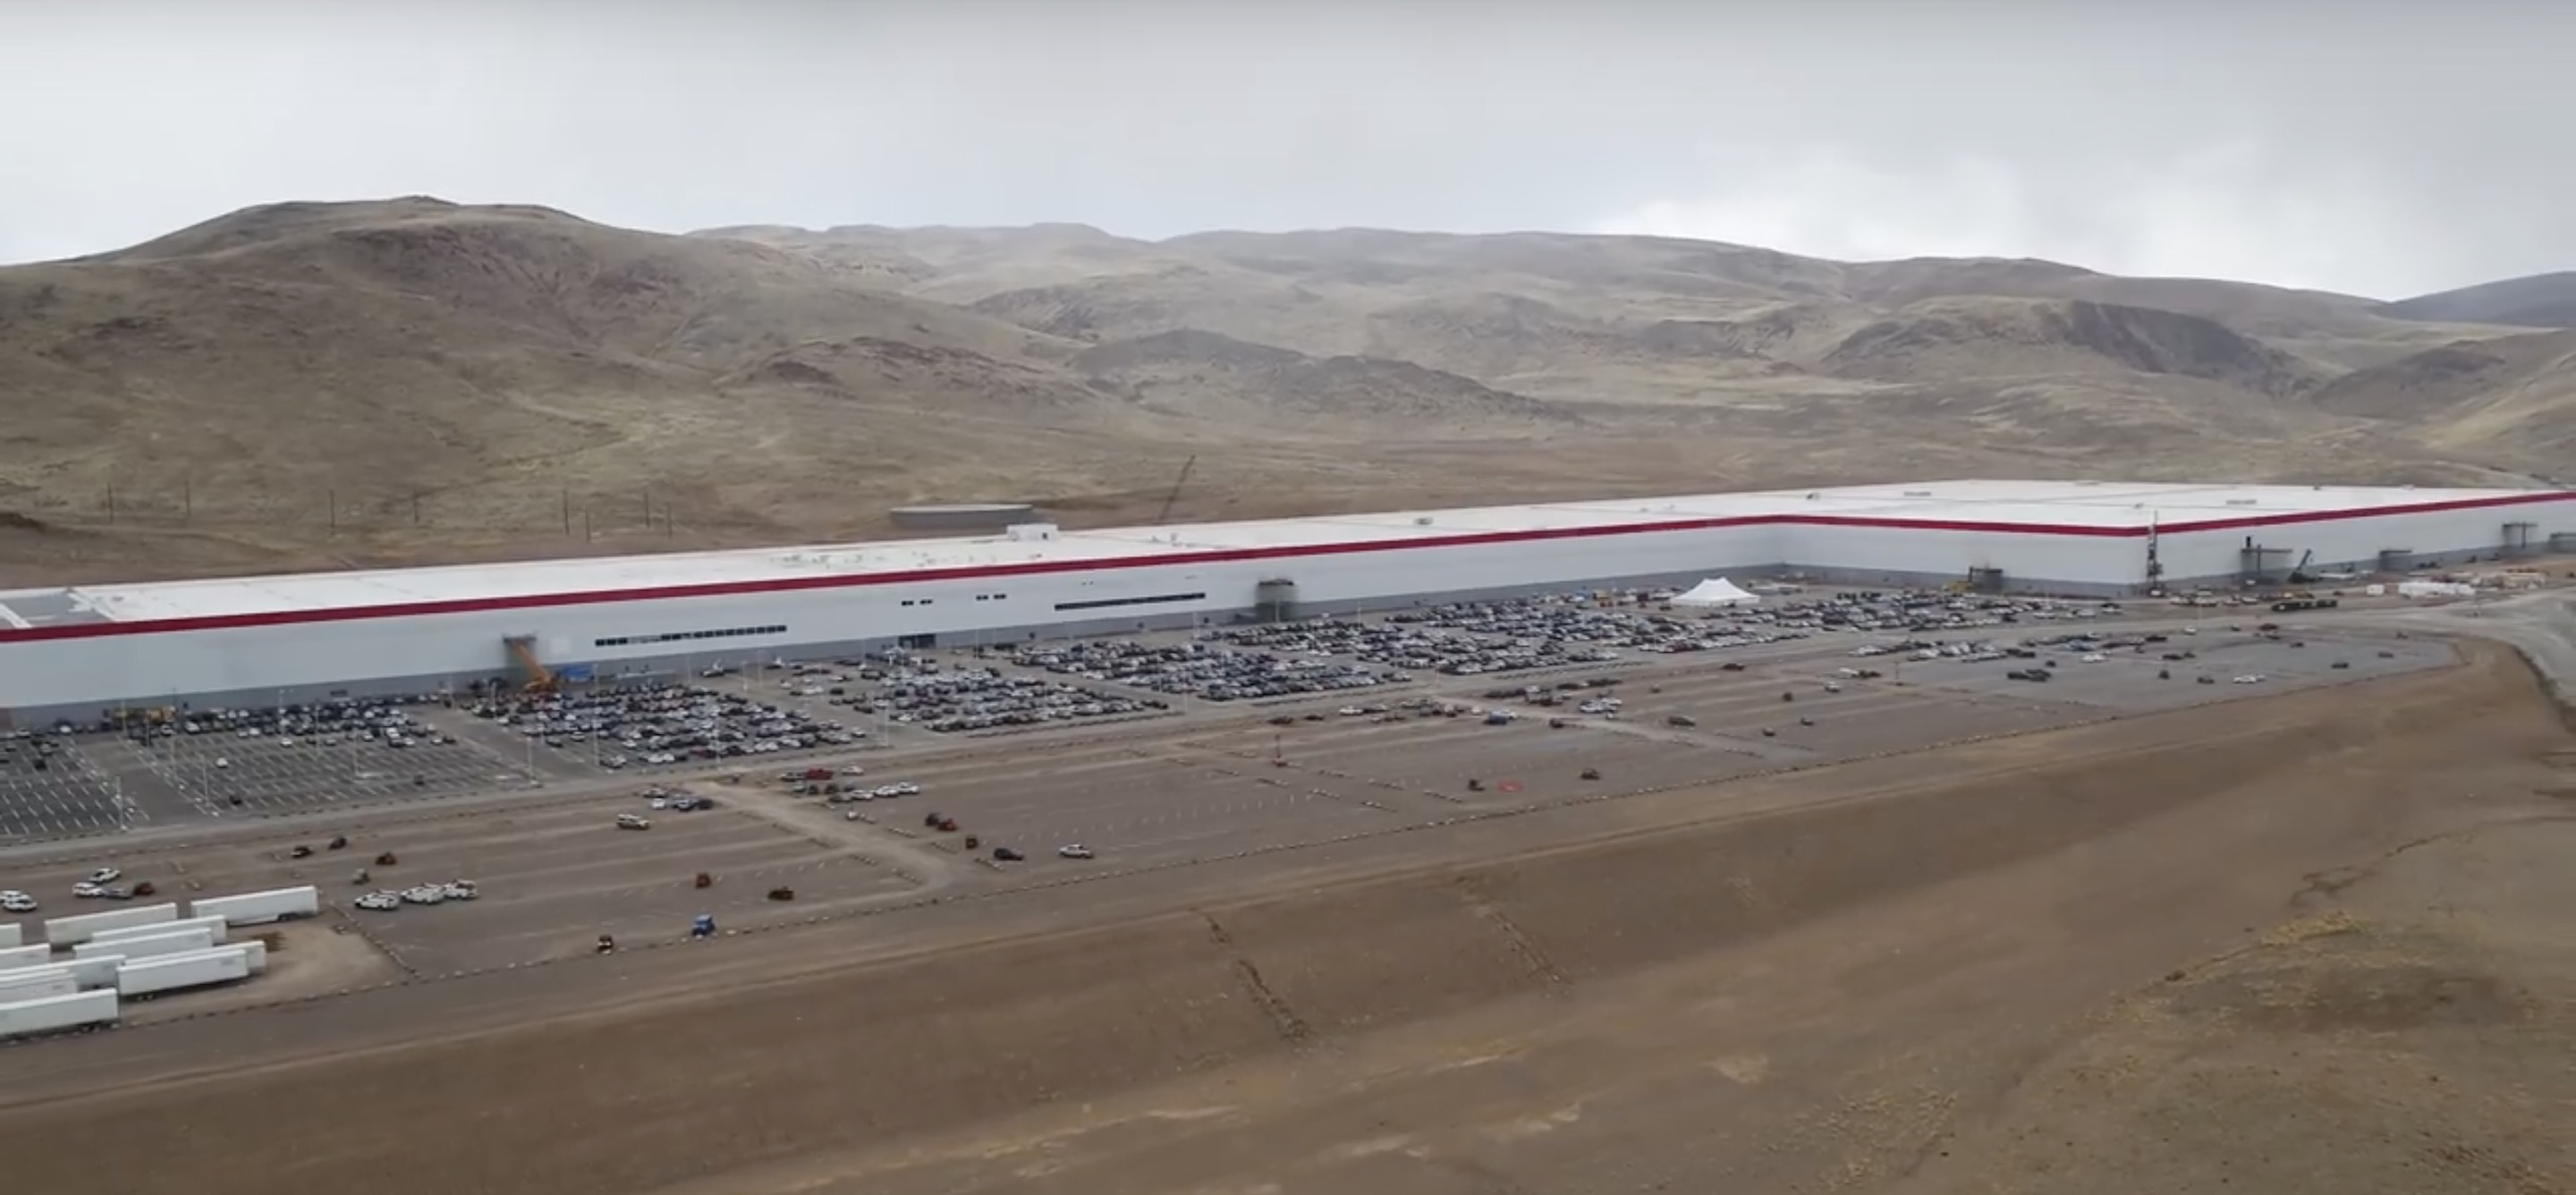 Tesla confirms Gigafactory 1 battery production at '~20 GWh' – more than all other carmakers combined